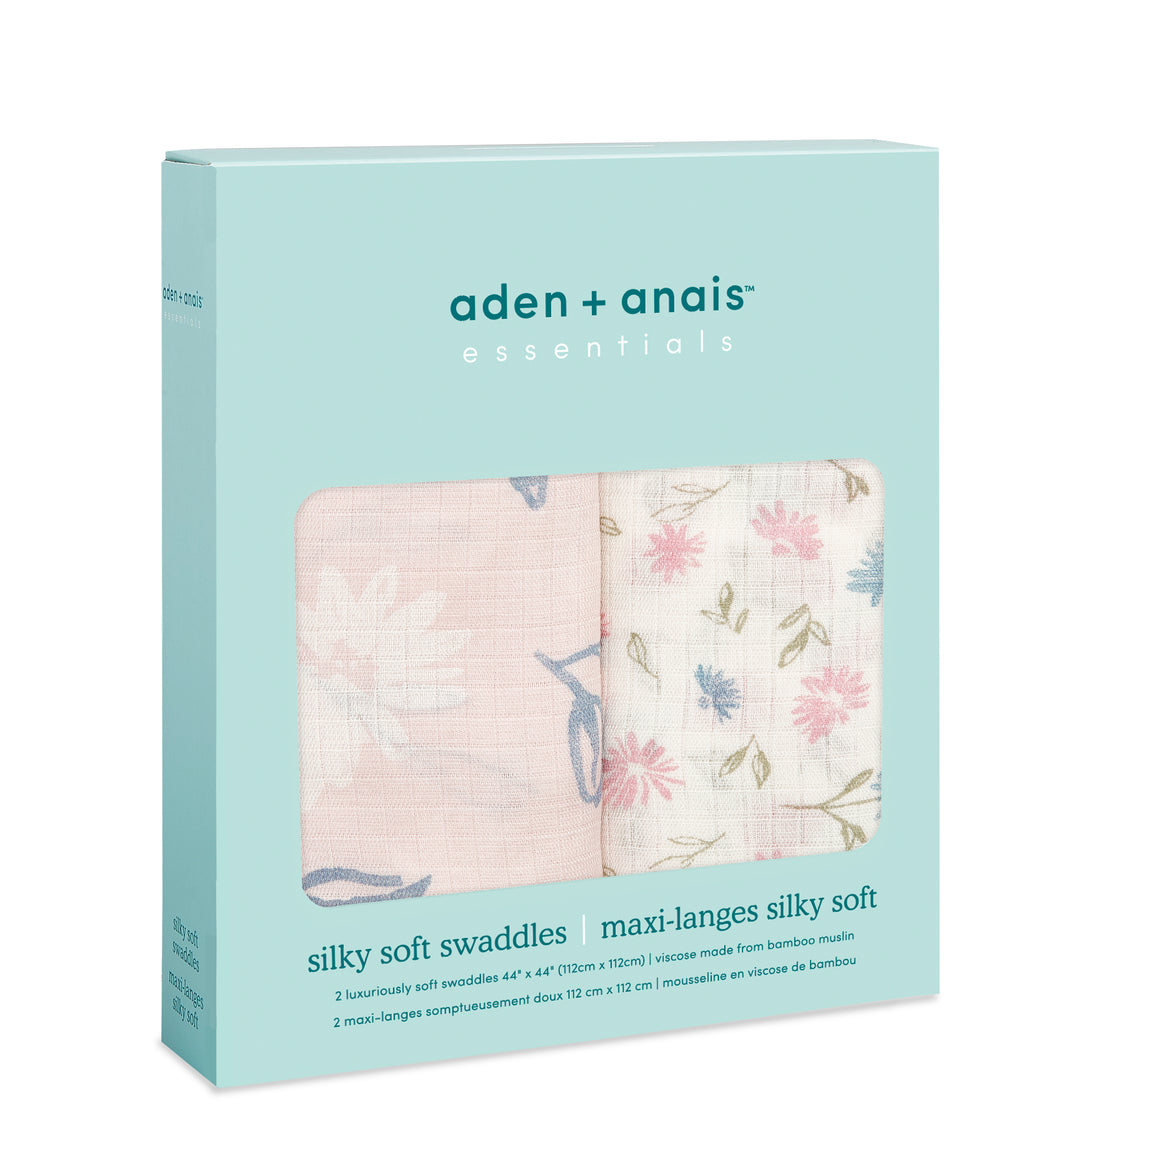 aden+anais essentials vintage floral 2 pack bamboo silky soft swaddles